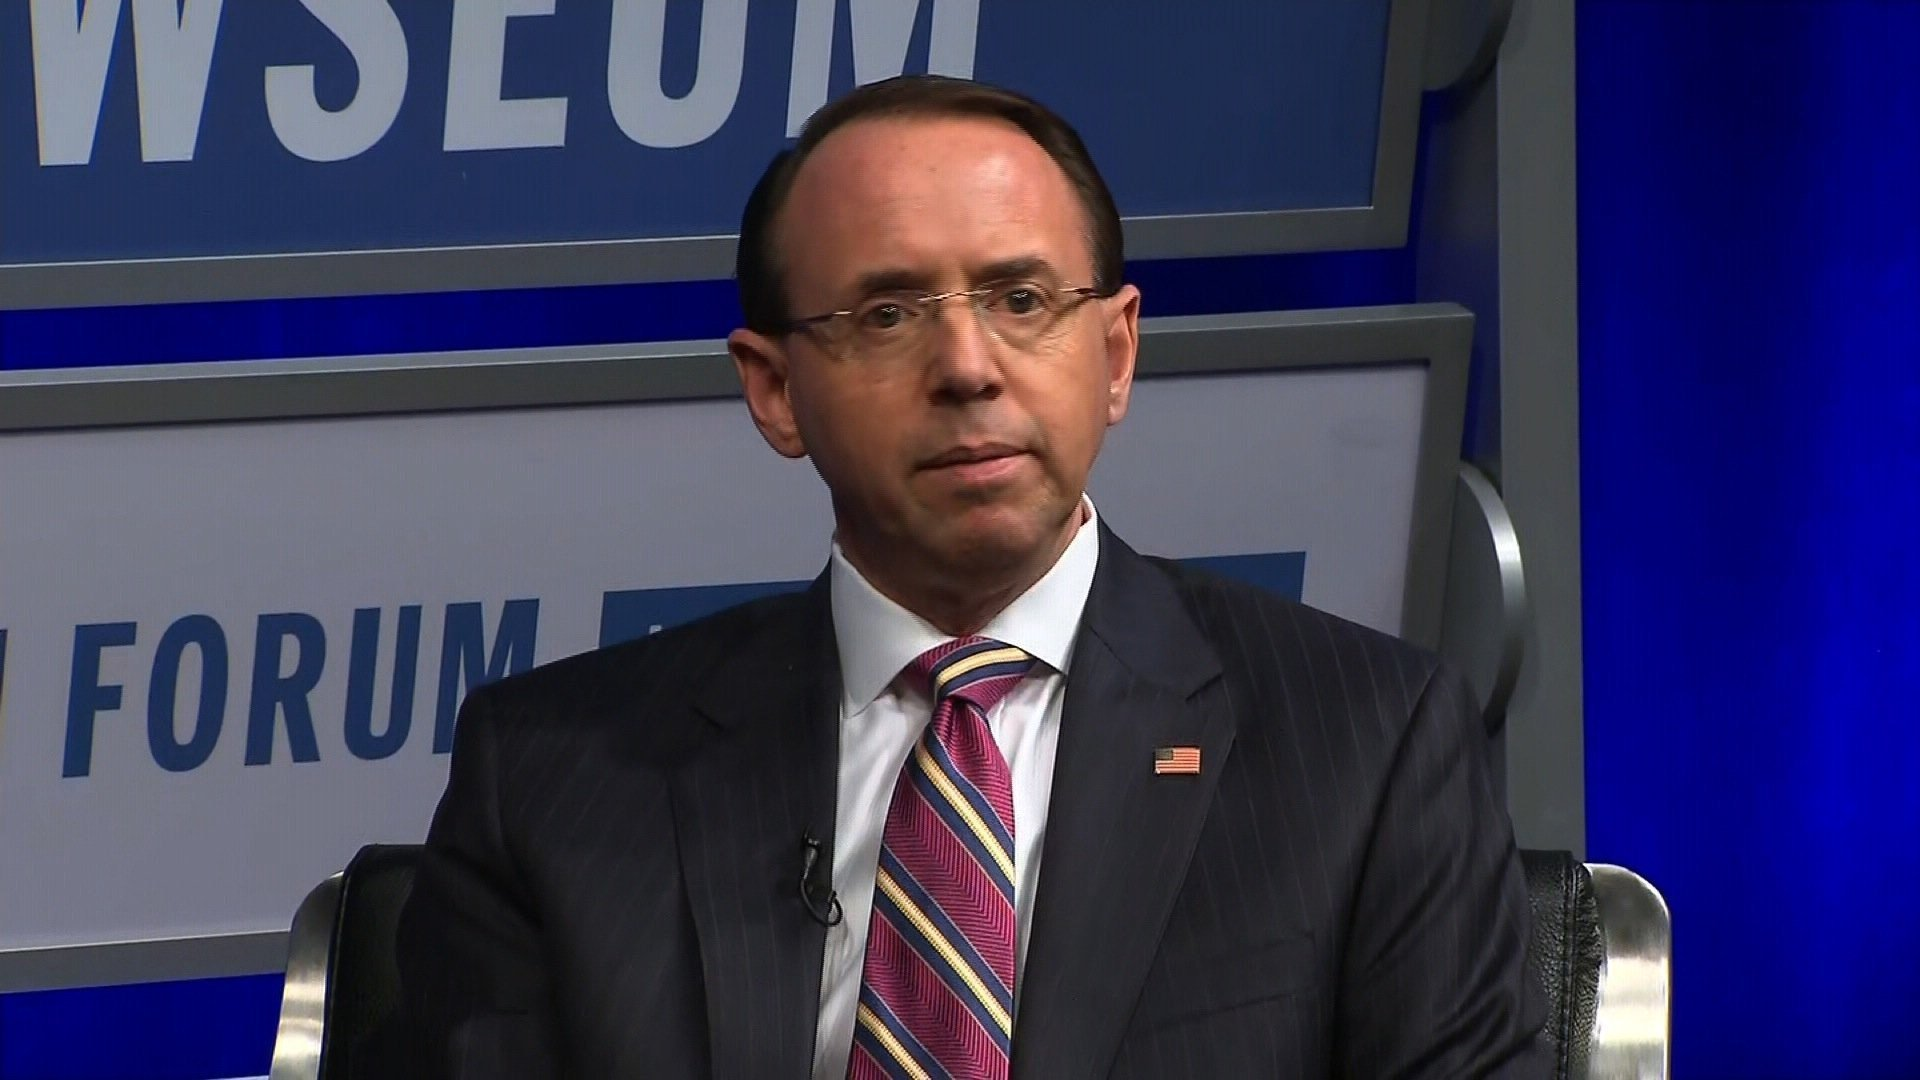 Trump won't say if he has confidence in Rosenstein